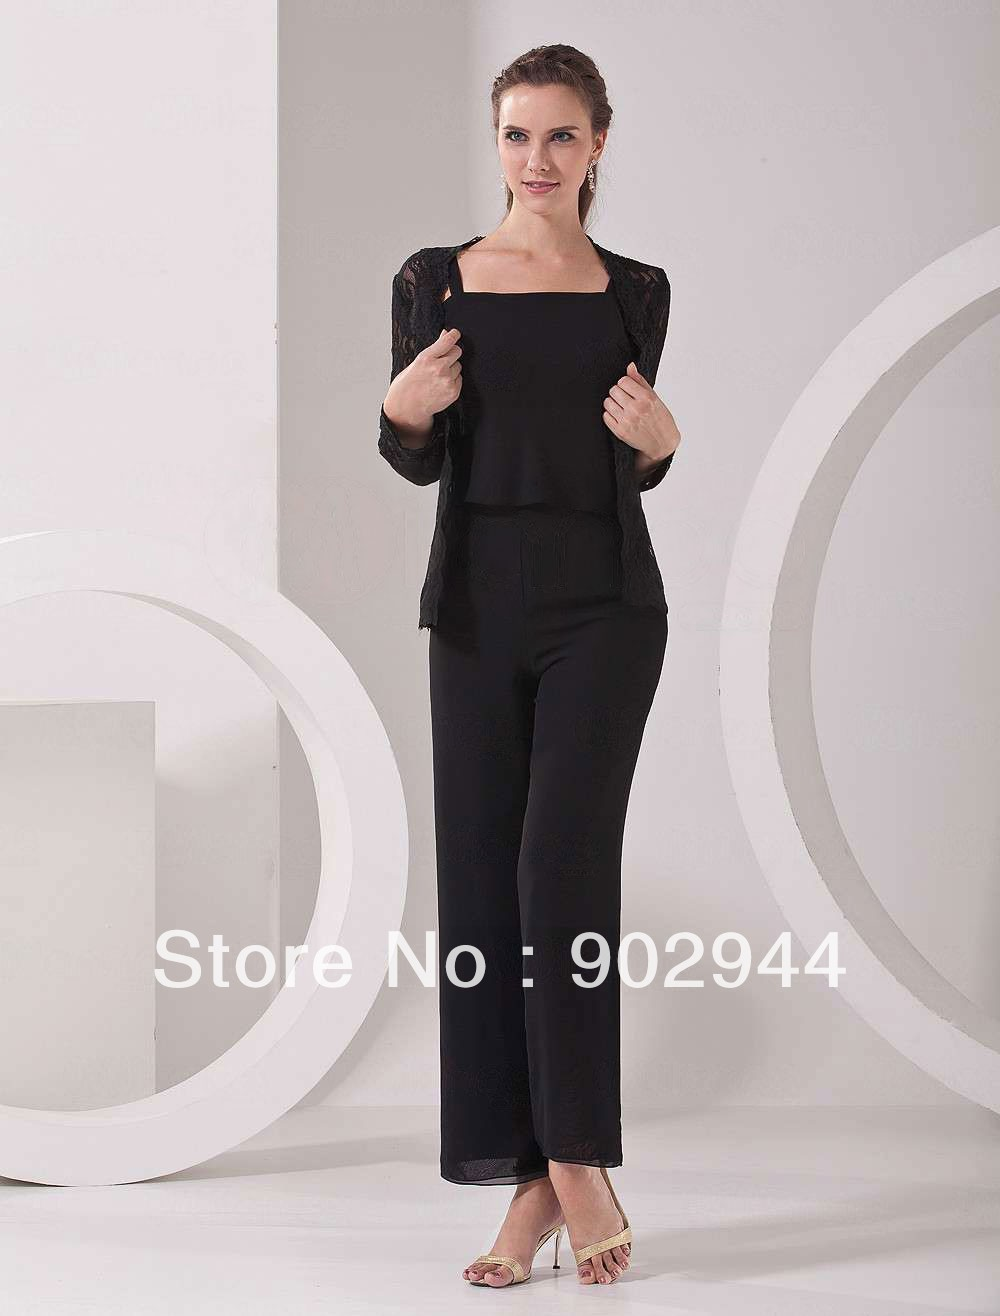 t tahari plus size dresses